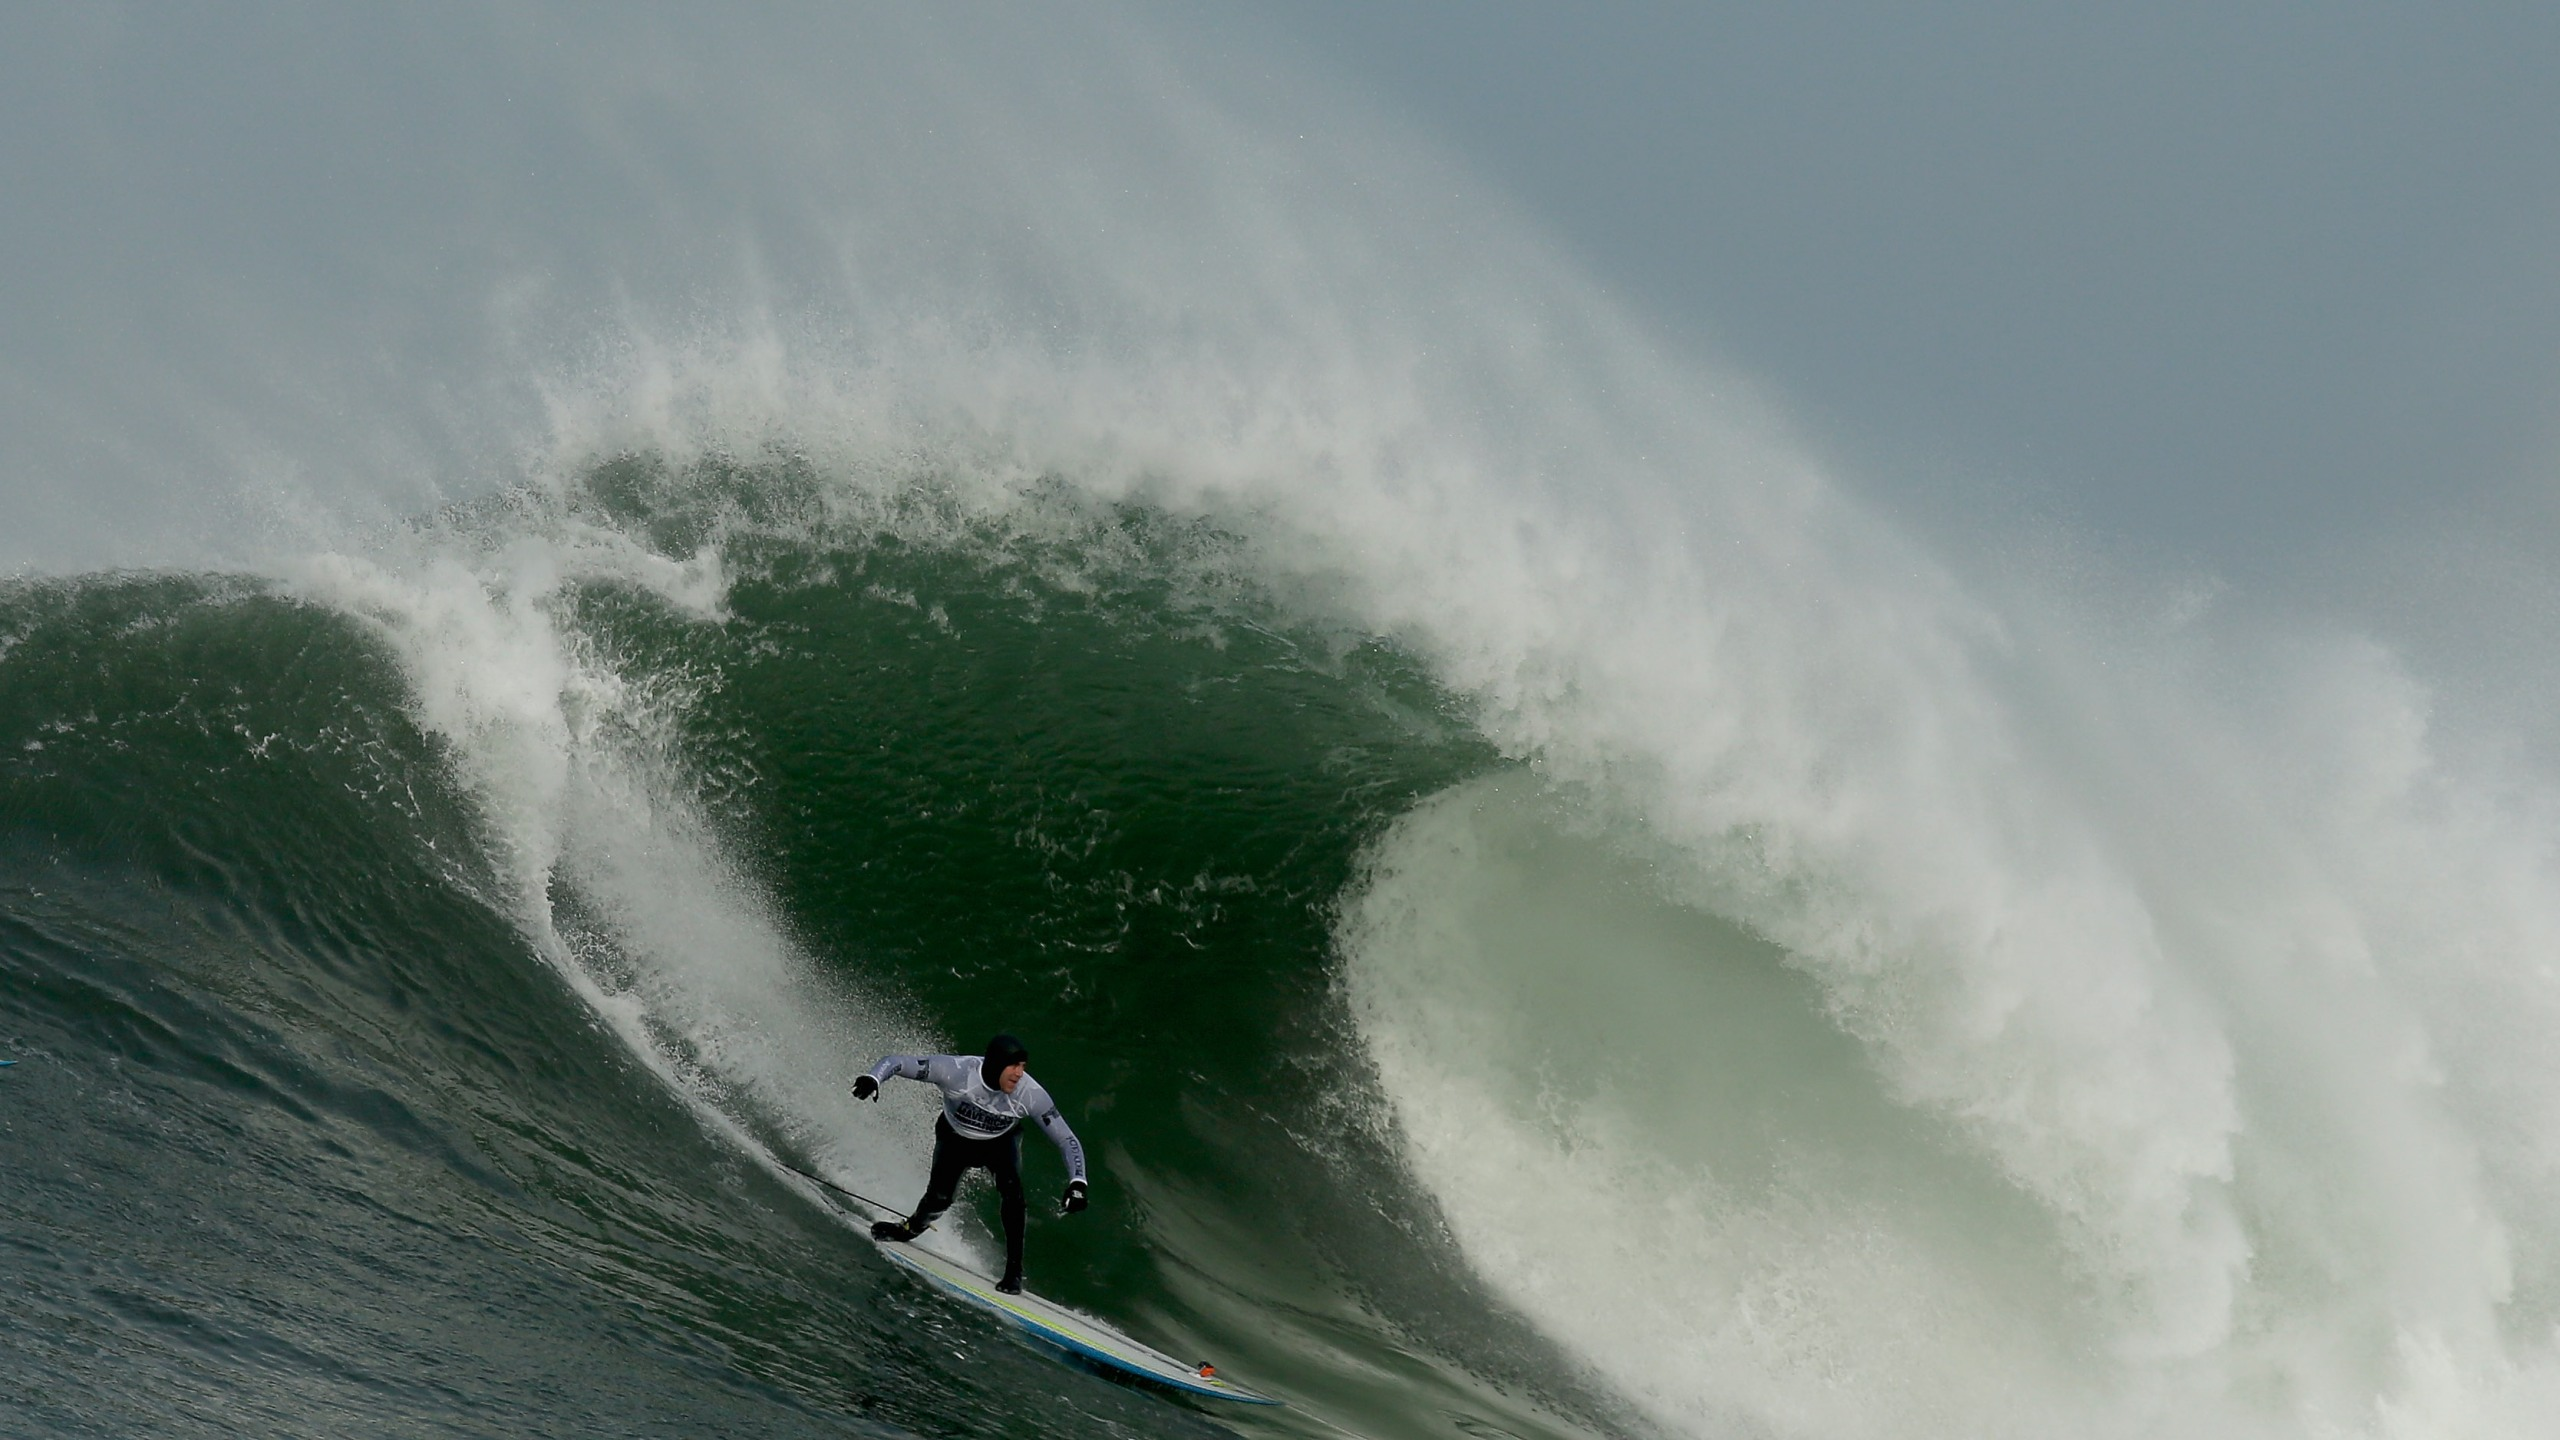 Grant Washburn rides a wave during the second heat of round one of Mavericks Invitational on January 24, 2014 in Half Moon Bay, California. (Credit: Ezra Shaw/Getty Images)